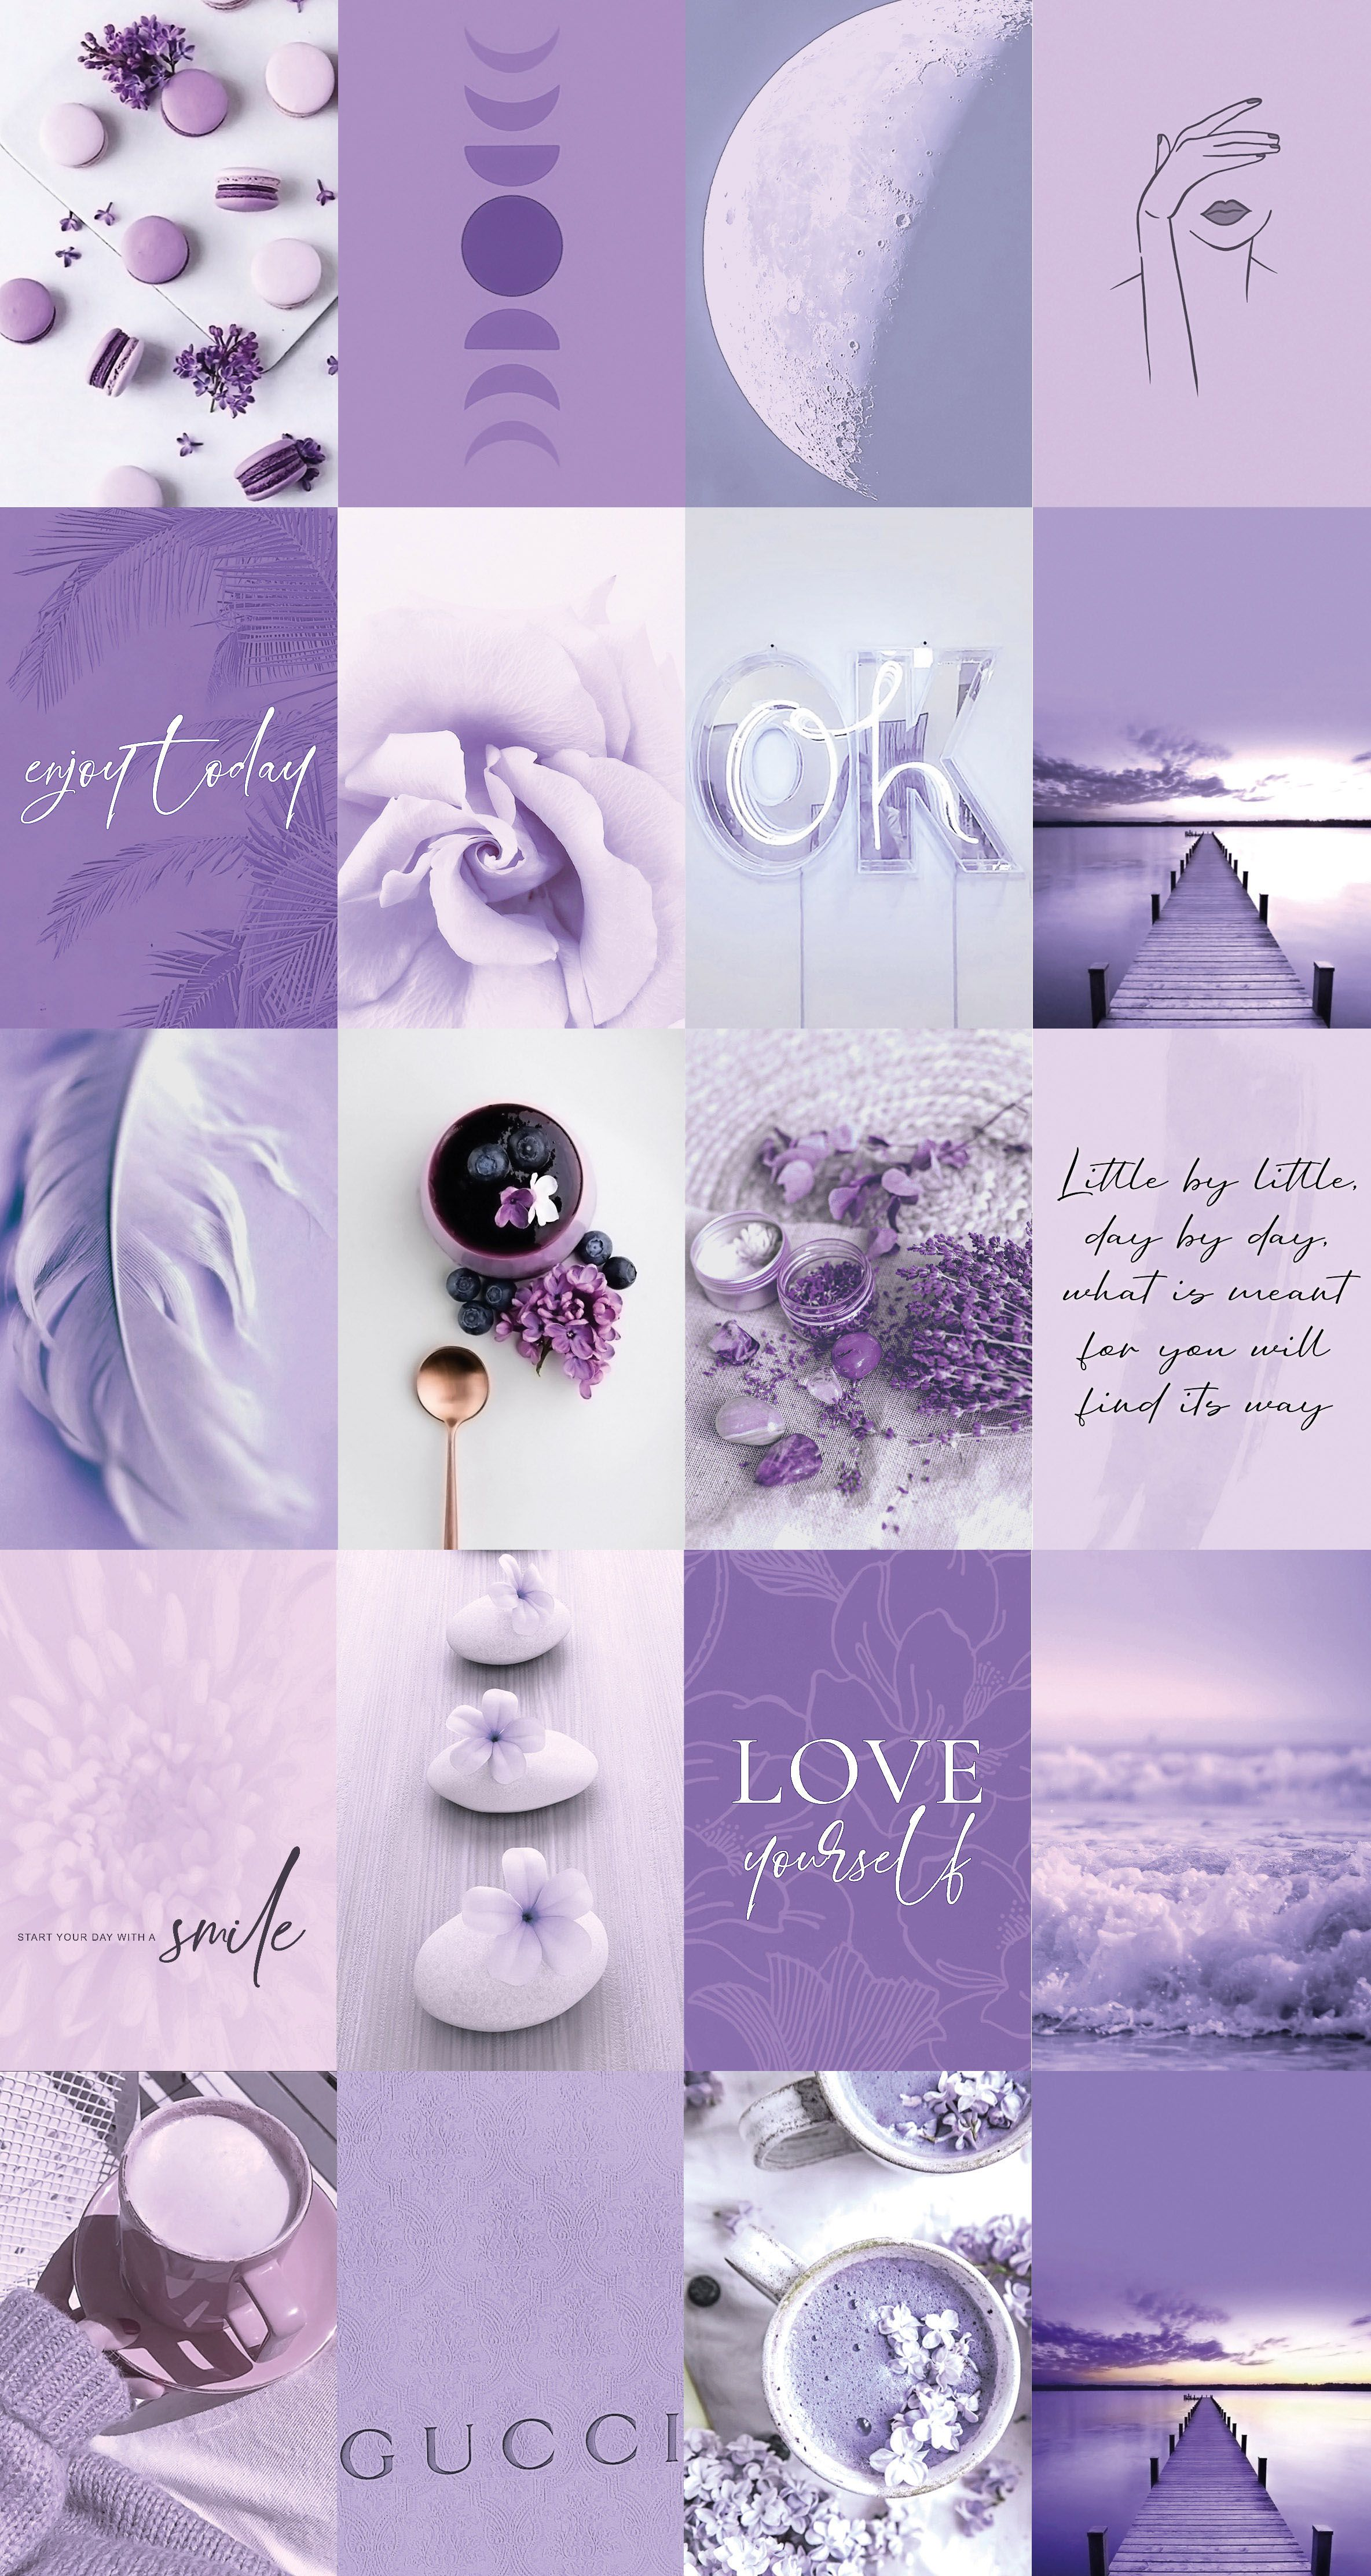 Decorate your dorm or room with this aesthetic lavender purple wall collage kit!